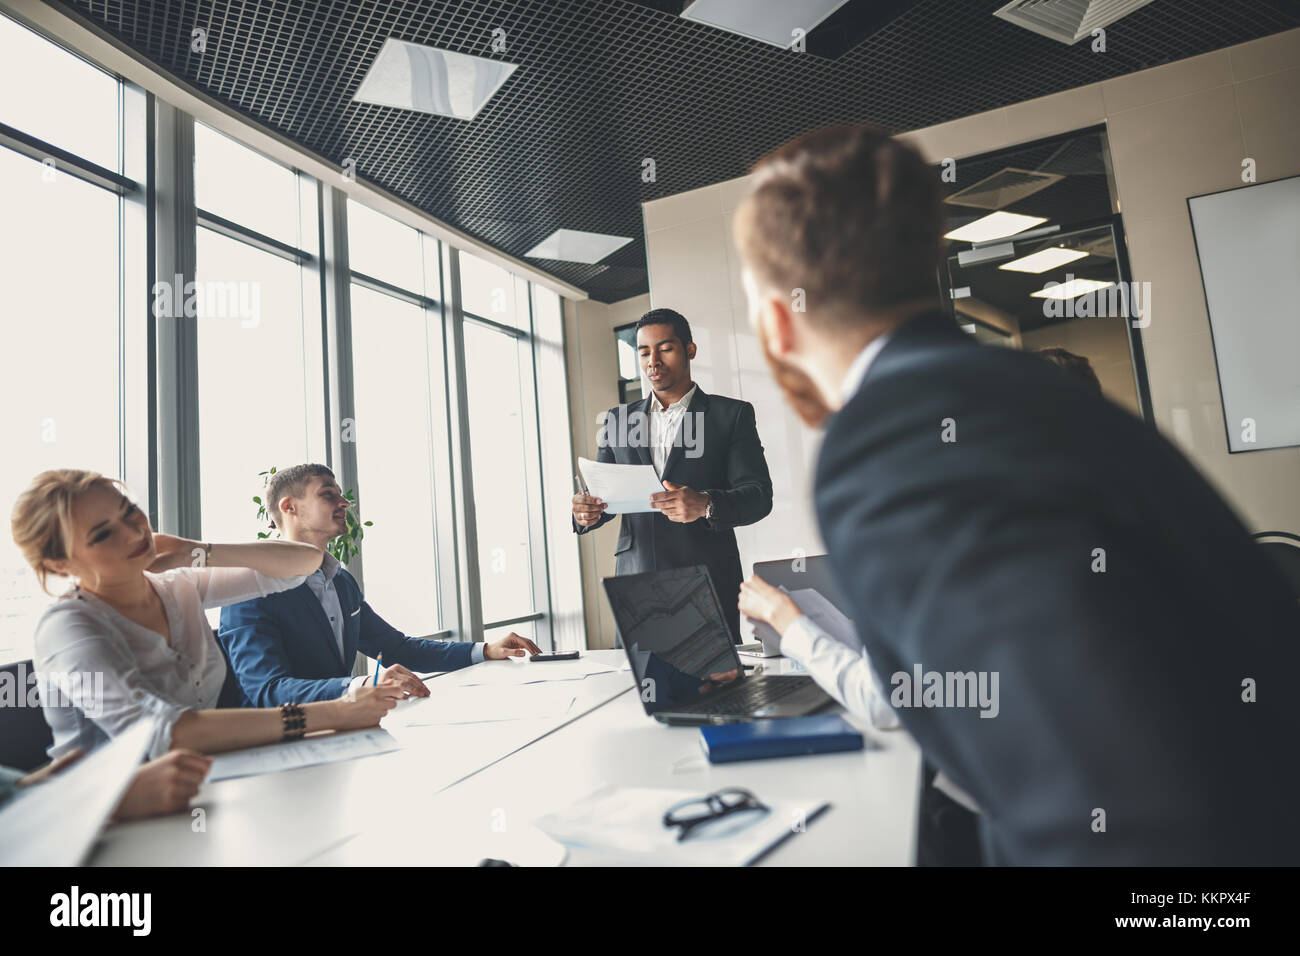 Business people working in modern conference room - Stock Image